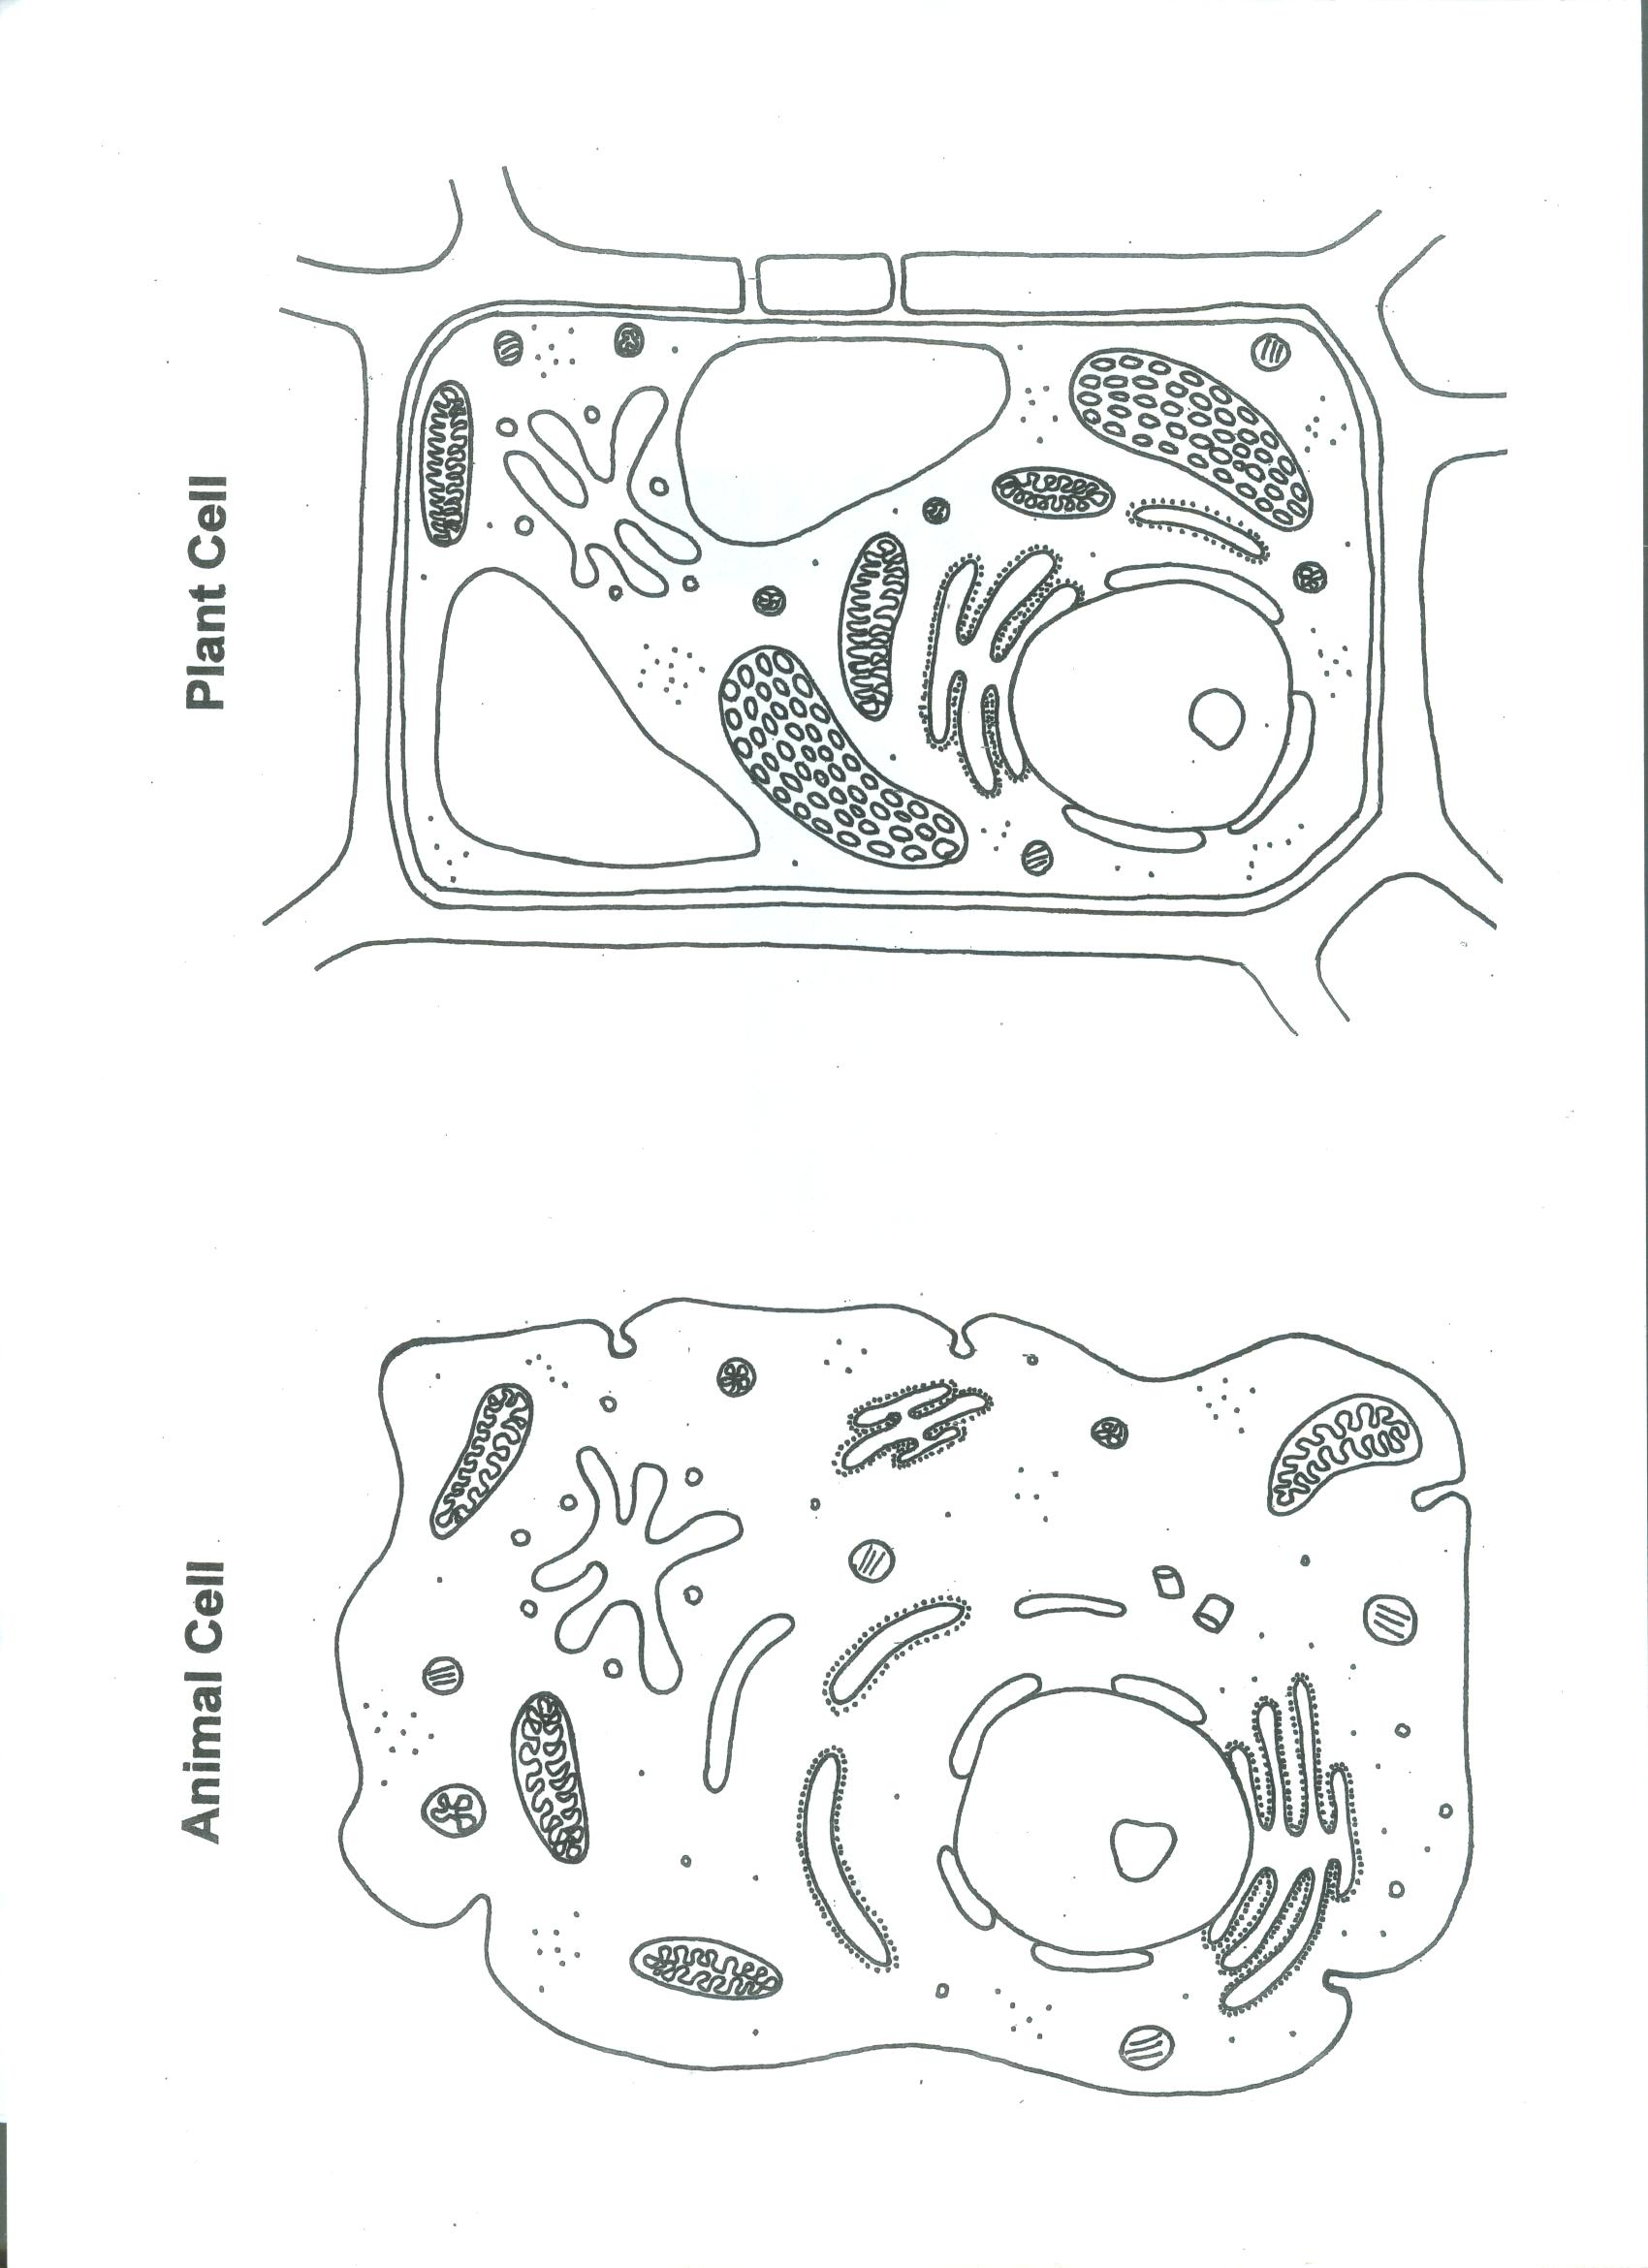 Worksheets Eukaryotic Cell Diagram Worksheets animal and plant cell worksheets coterraneo color worksheet 6 cell